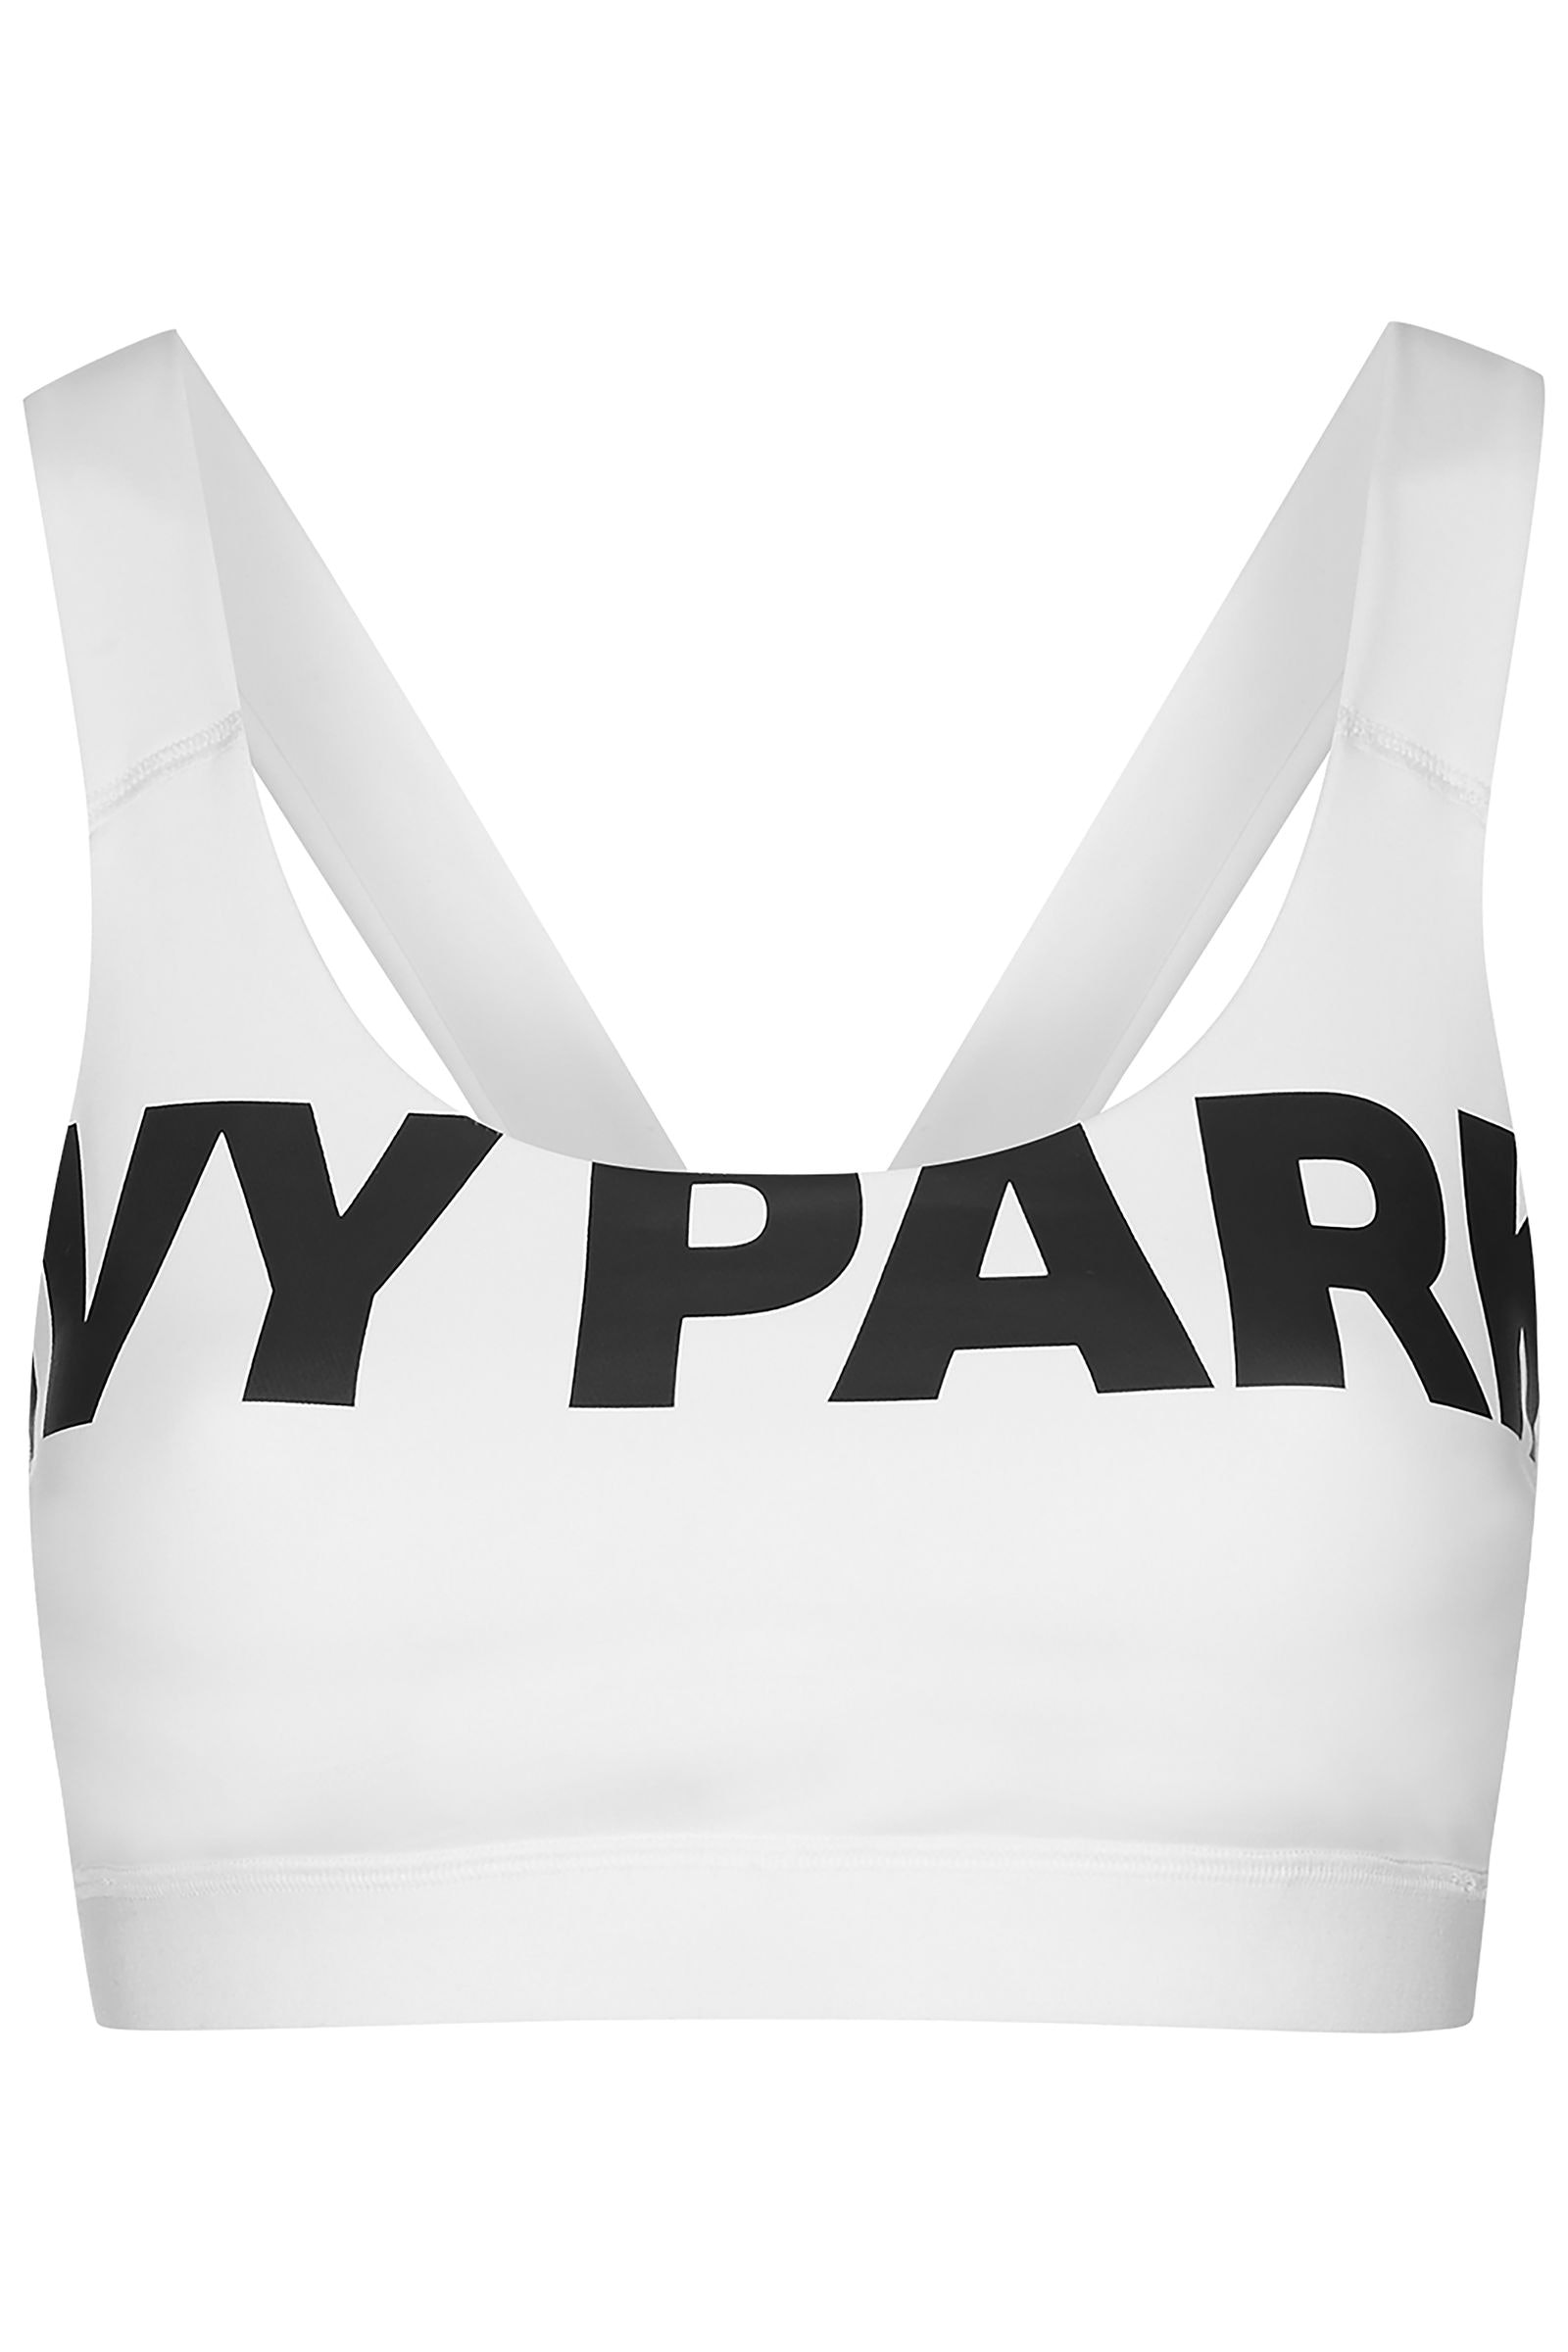 c85304a42 What Sizes Do The Beyonce Ivy Park Bras Come In  This Is The Exact Range —  PHOTOS